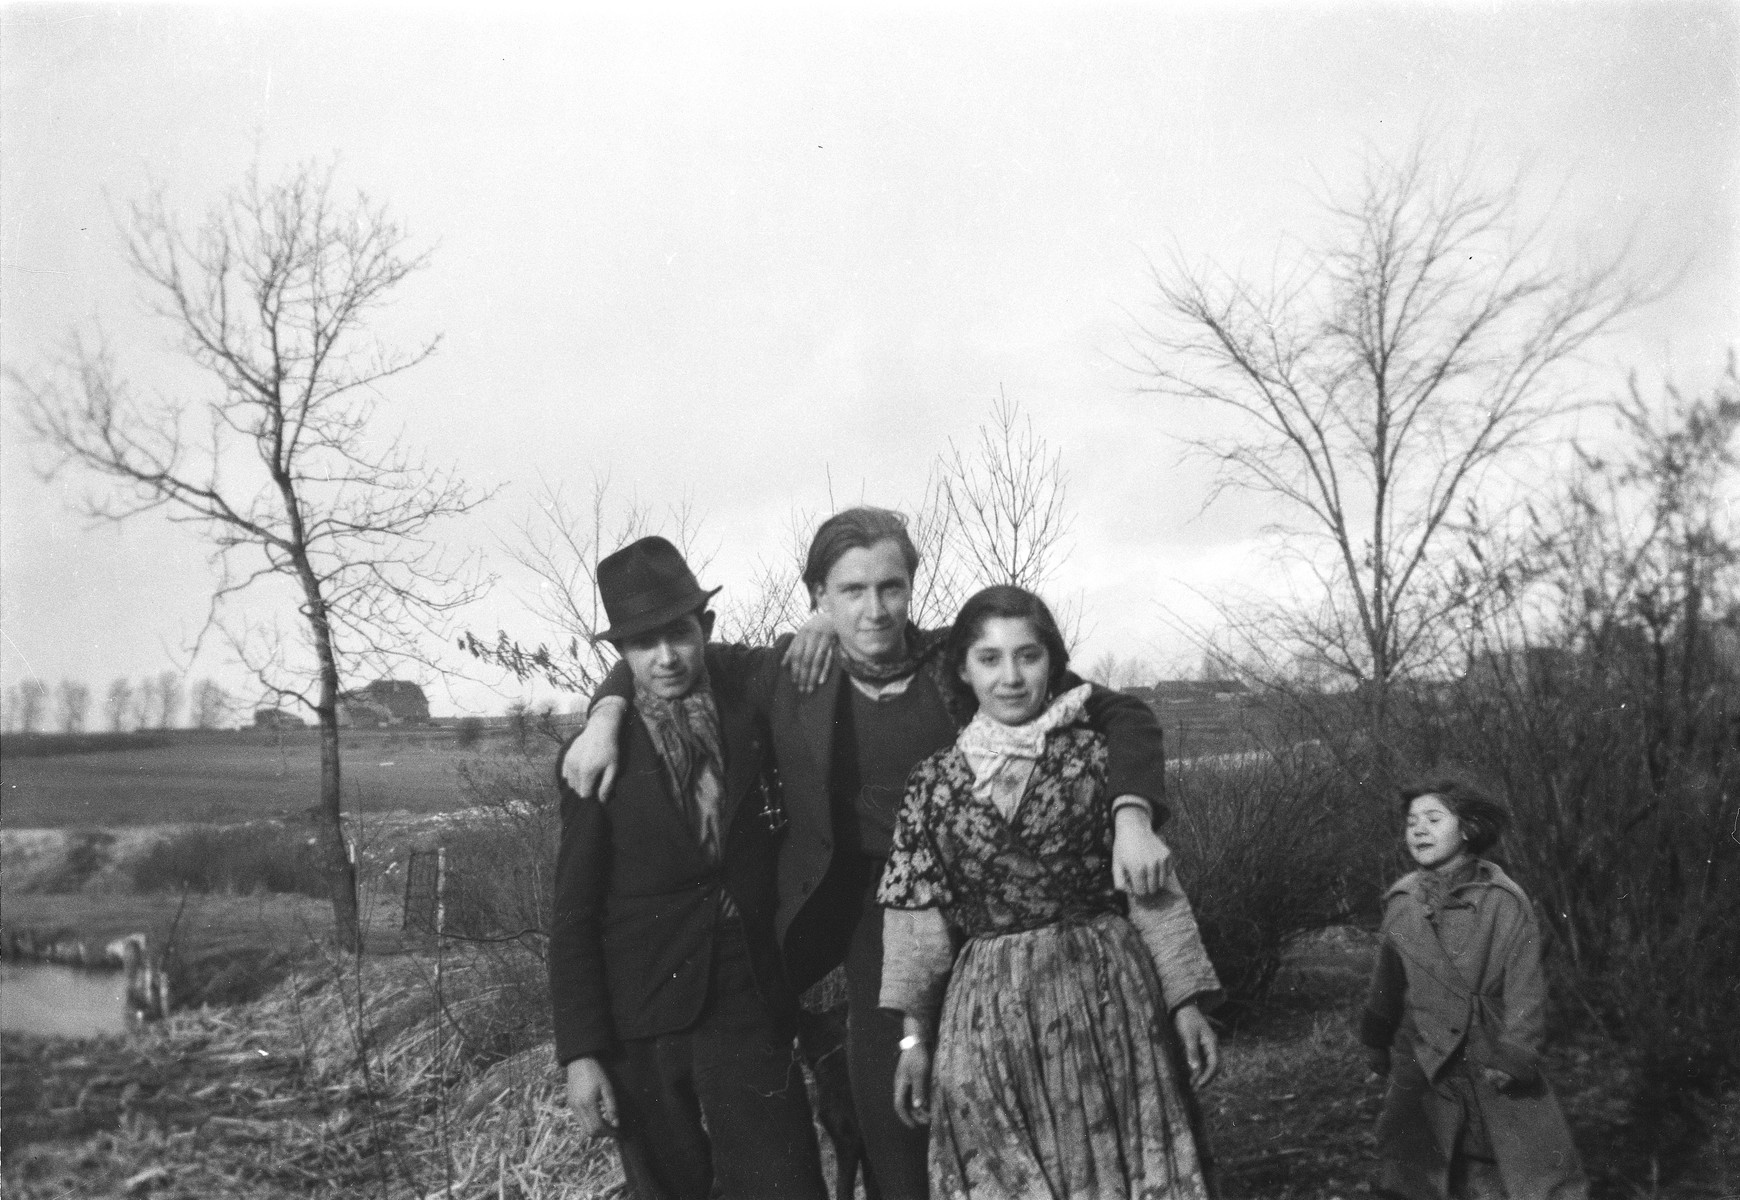 Jan Yoors (center) poses with arms around Romani (Gypsy) friends, as a child looks on.